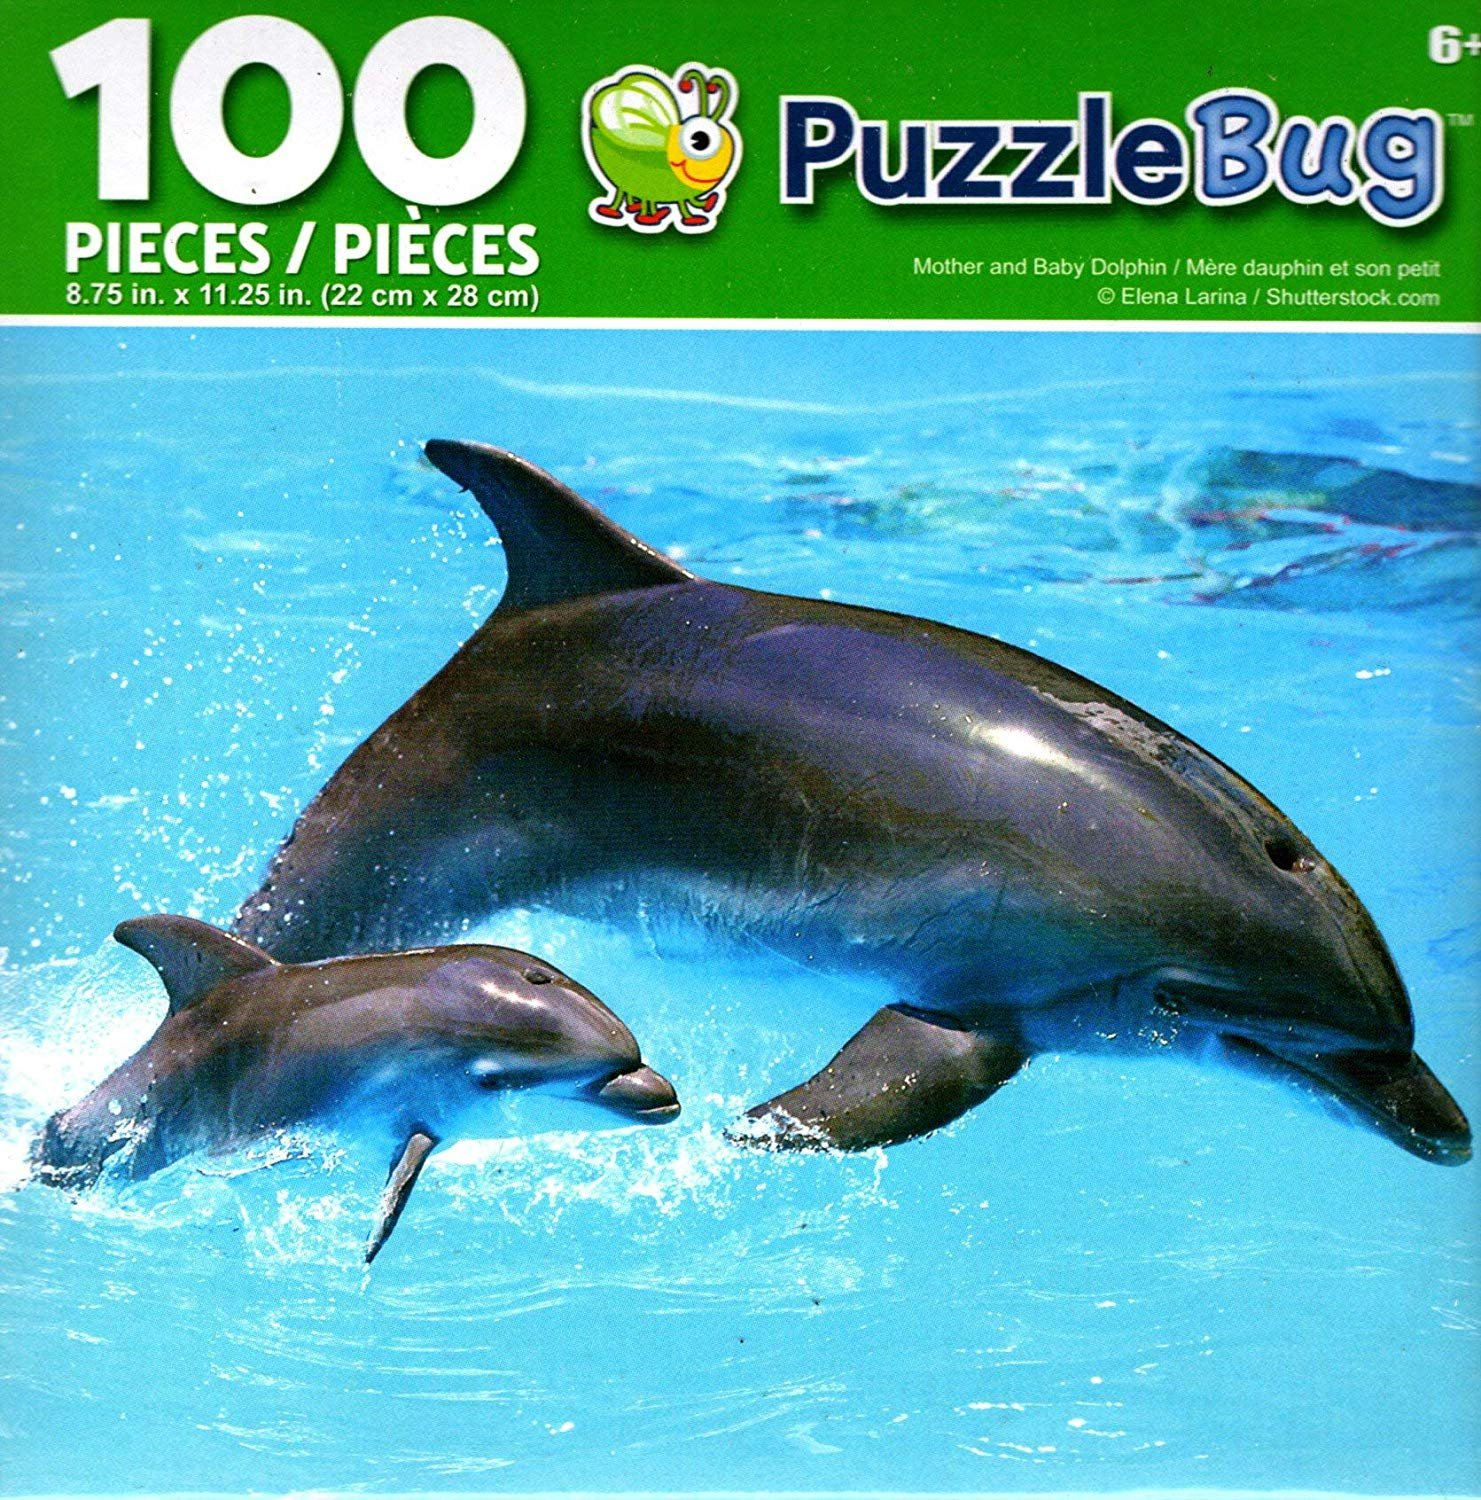 Cra-Z-Art Mother and Baby Dolphin - Puzzlebug - 100 Piece Jigsaw Puzzle